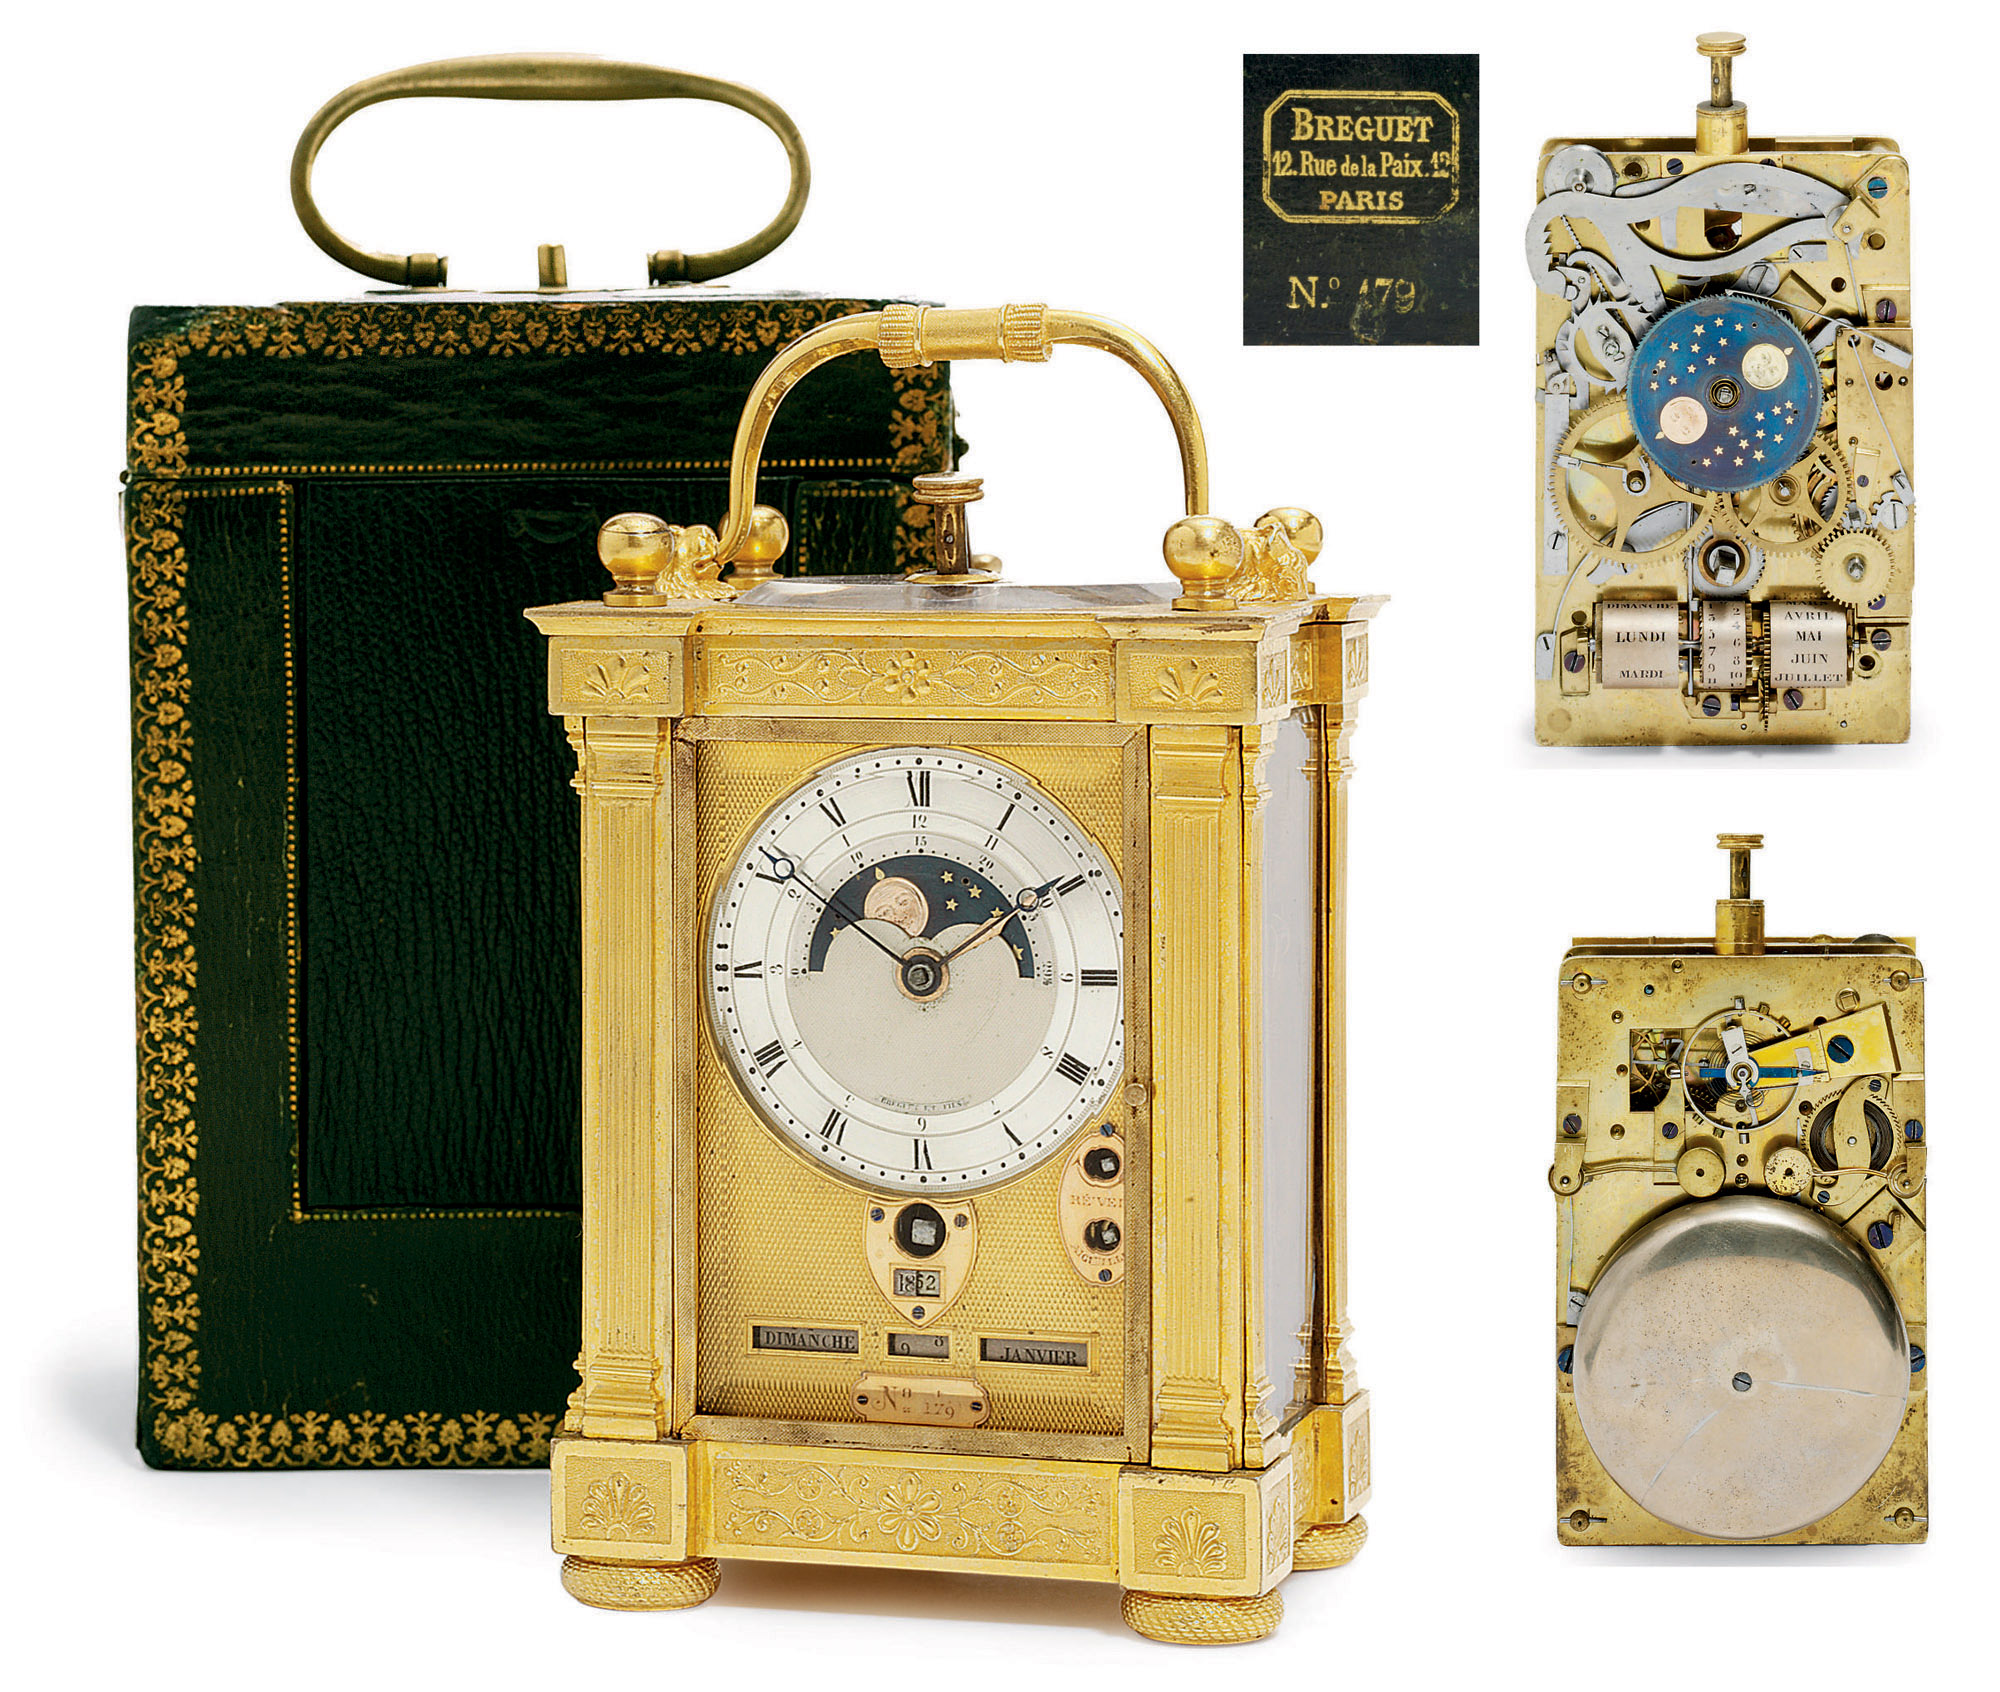 AN IMPORTANT EMPIRE ORMOLU QUARTER-REPEATING TIMEPIECE CARRIAGE CLOCK WITH FULL YEAR CALENDAR, MOON PHASE WITH AGE OF MOON AND ALARM